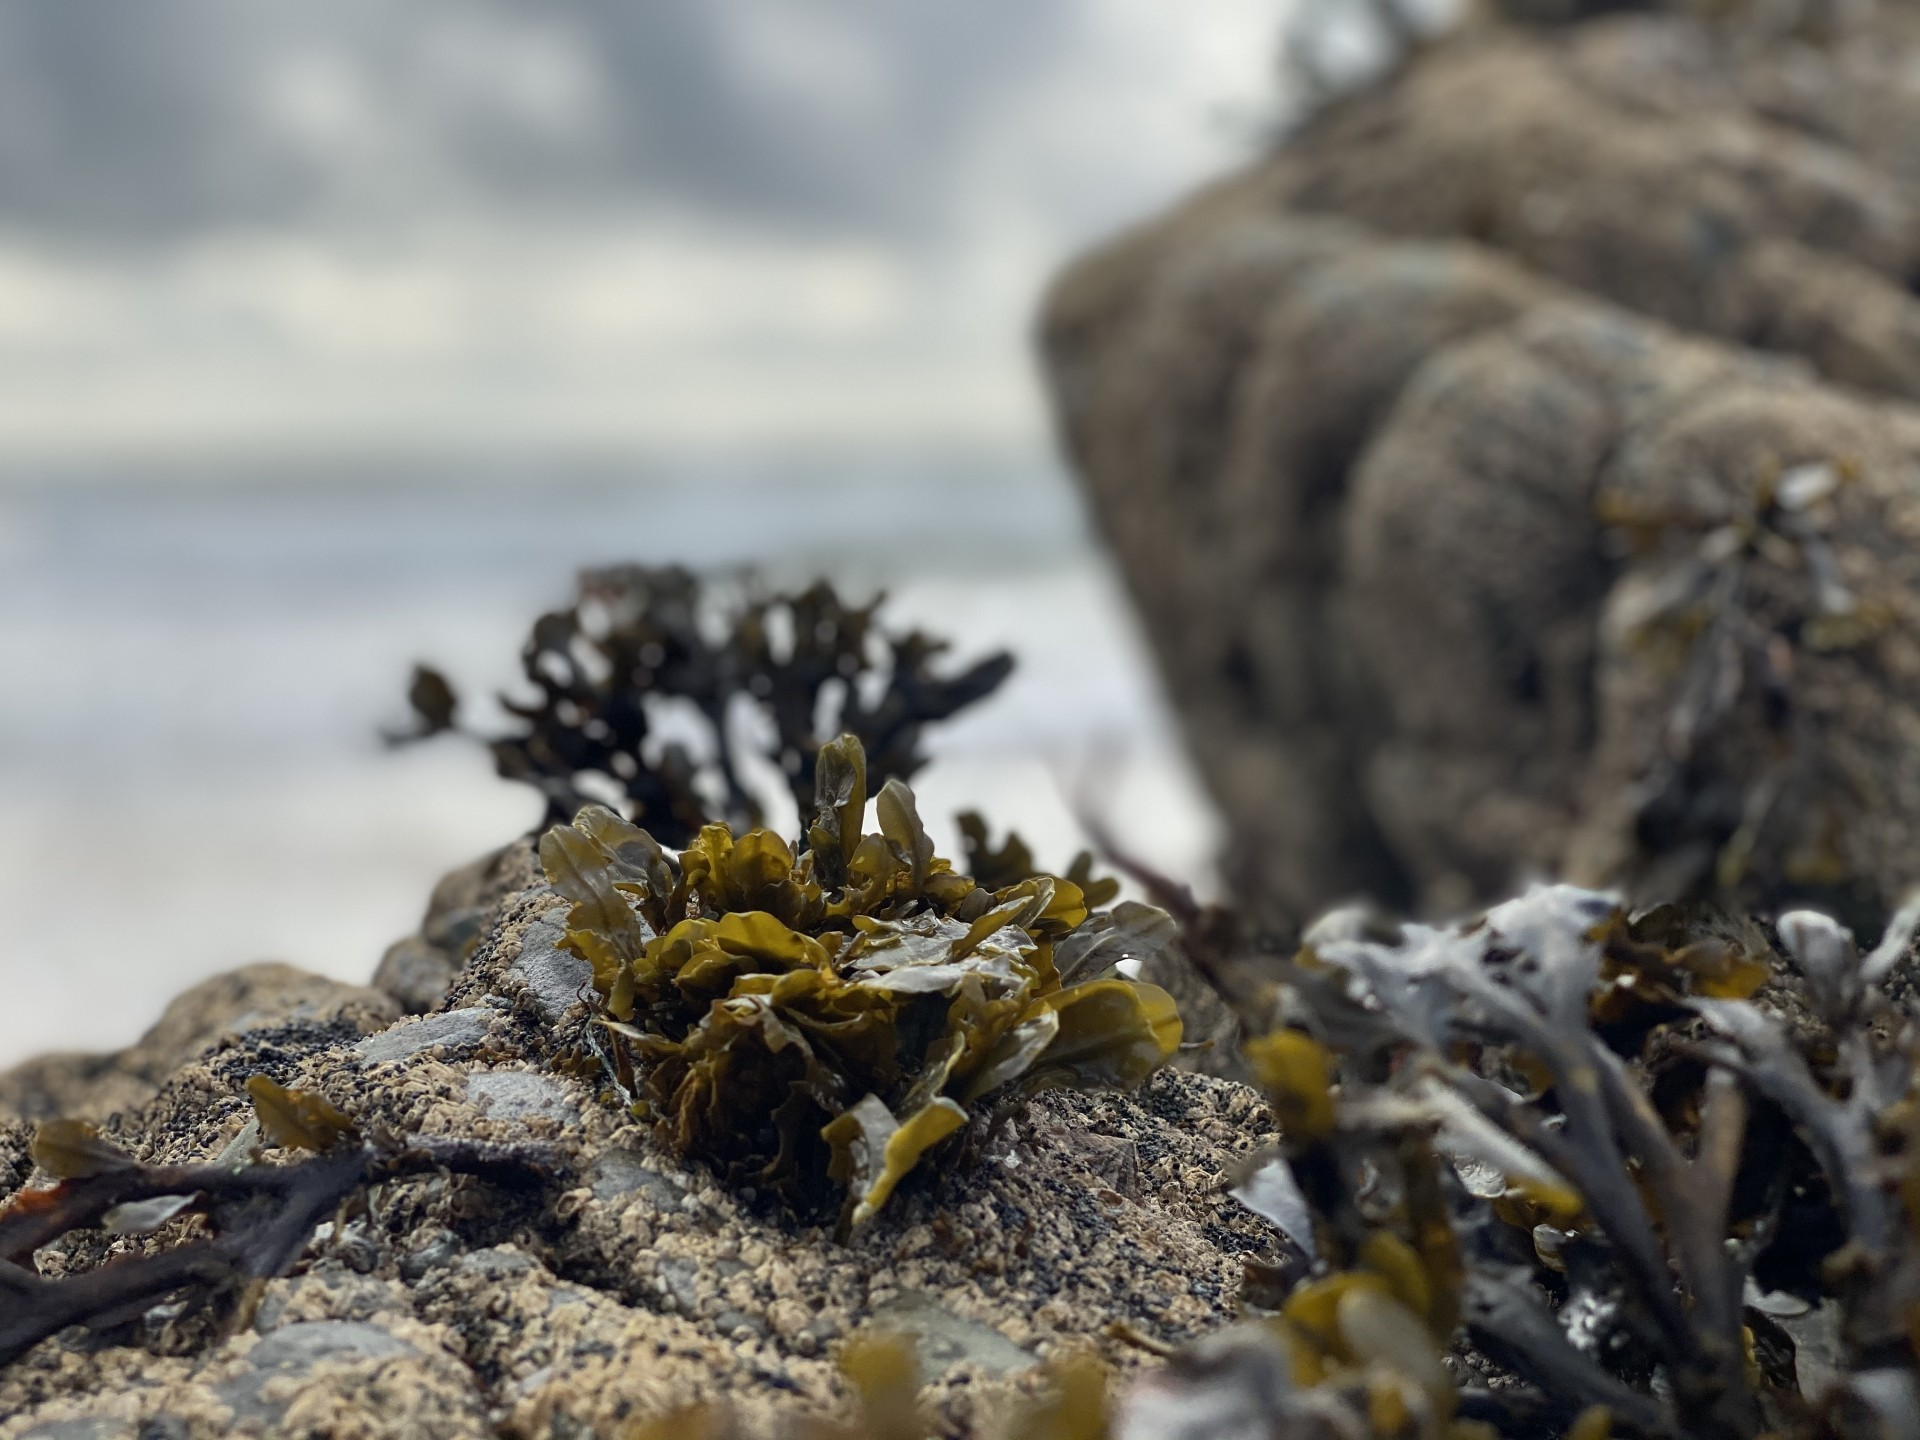 Seaweed clinging to a rock